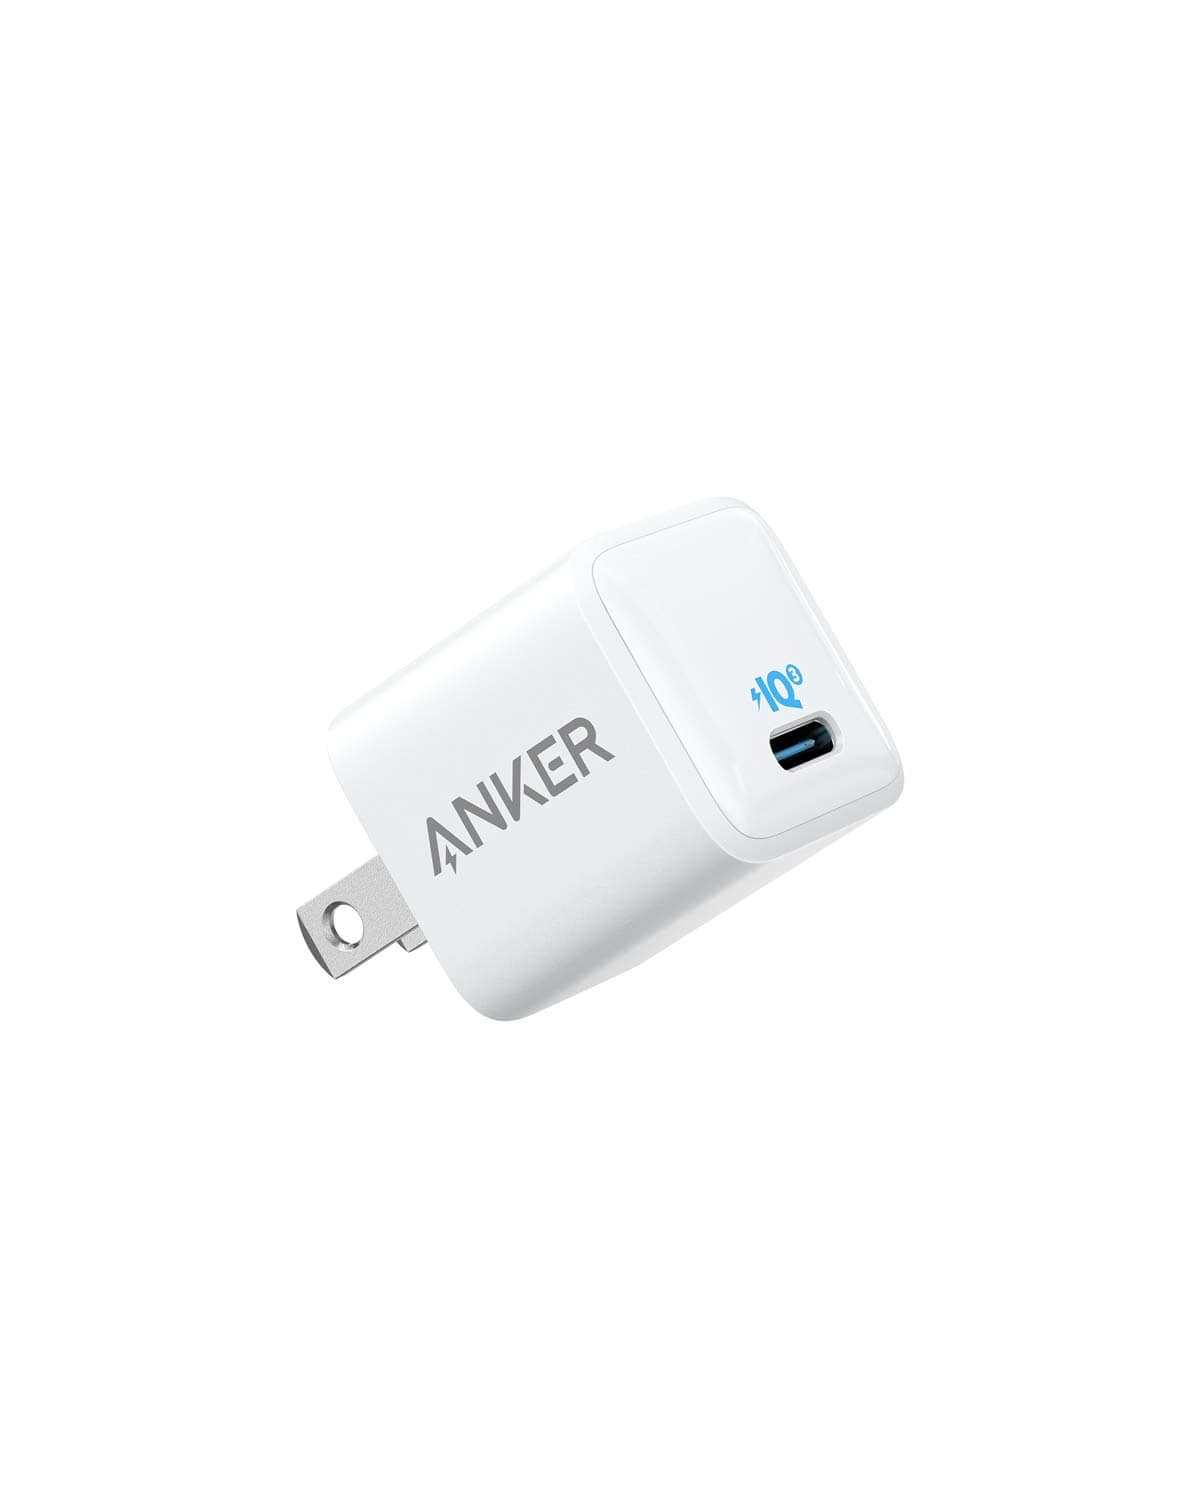 Anker 18W USB C Fast Charger PowerPort III Nano with PIQ 3.0, Fast Charger Adapter $15.99 + FSSS